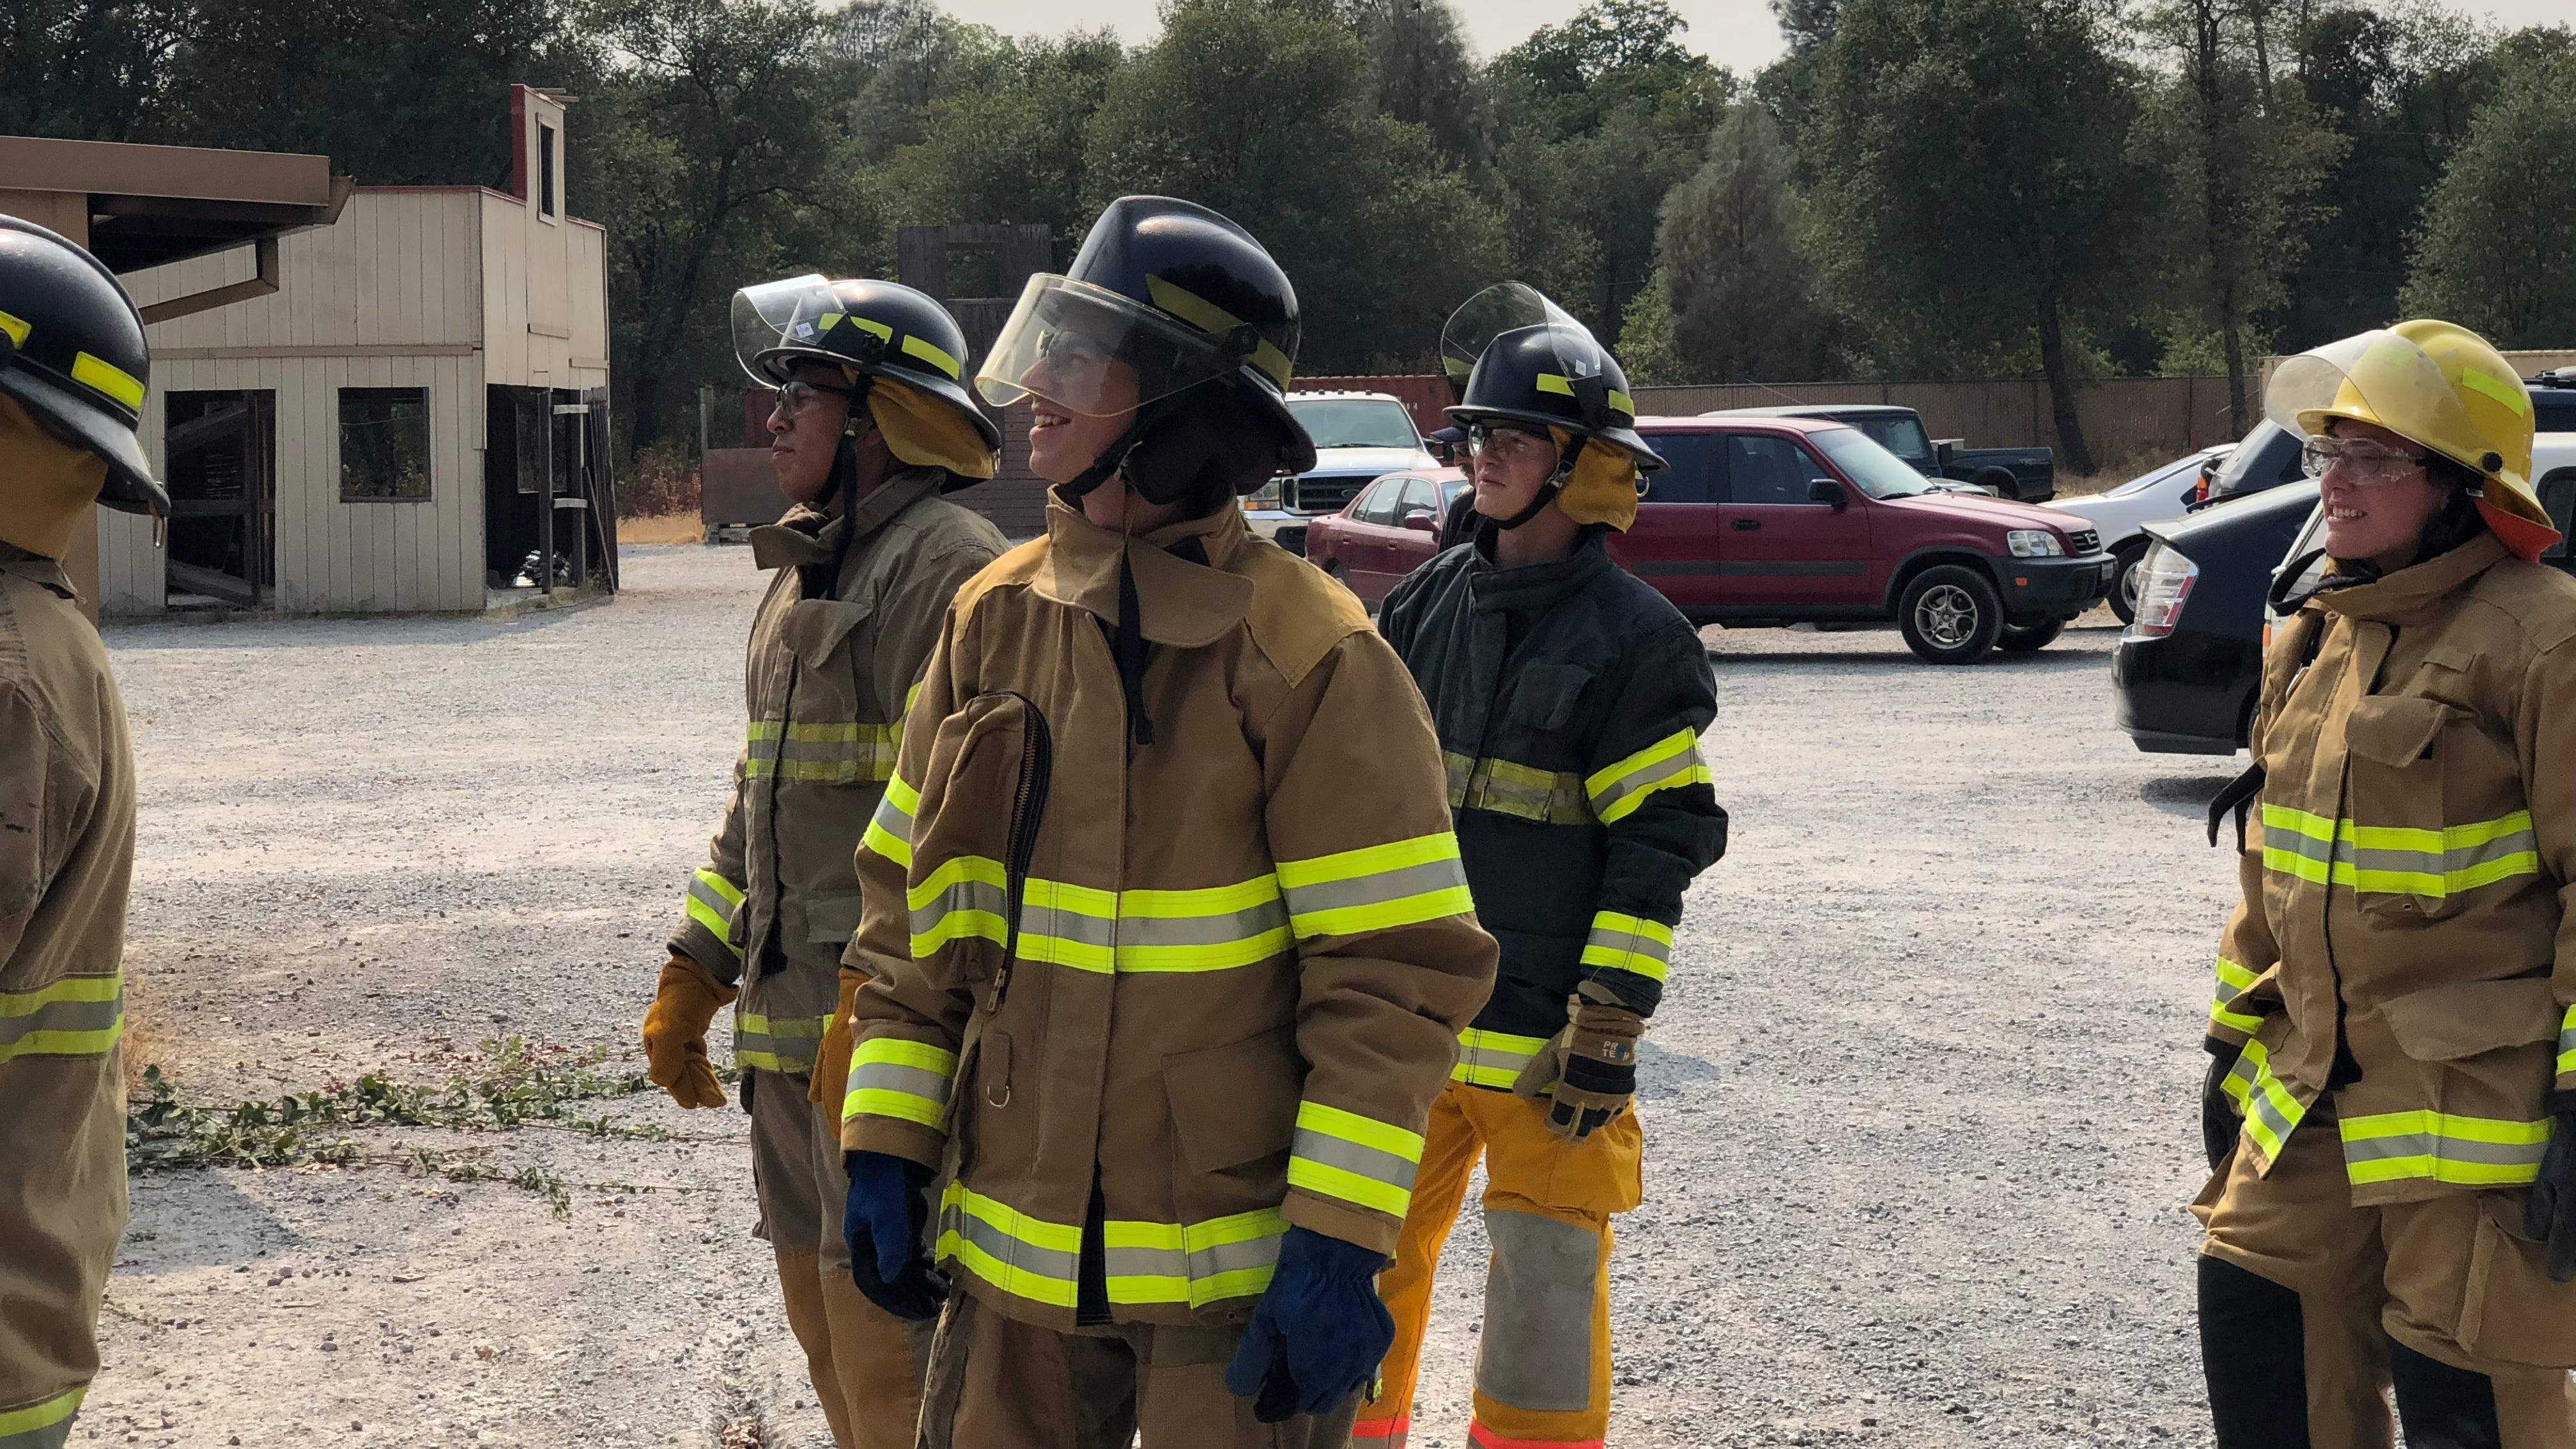 Jonny Natale (center) was inspired to enroll in Shasta College's Fire Technology Program after watching the Carr Fire destroy his community.